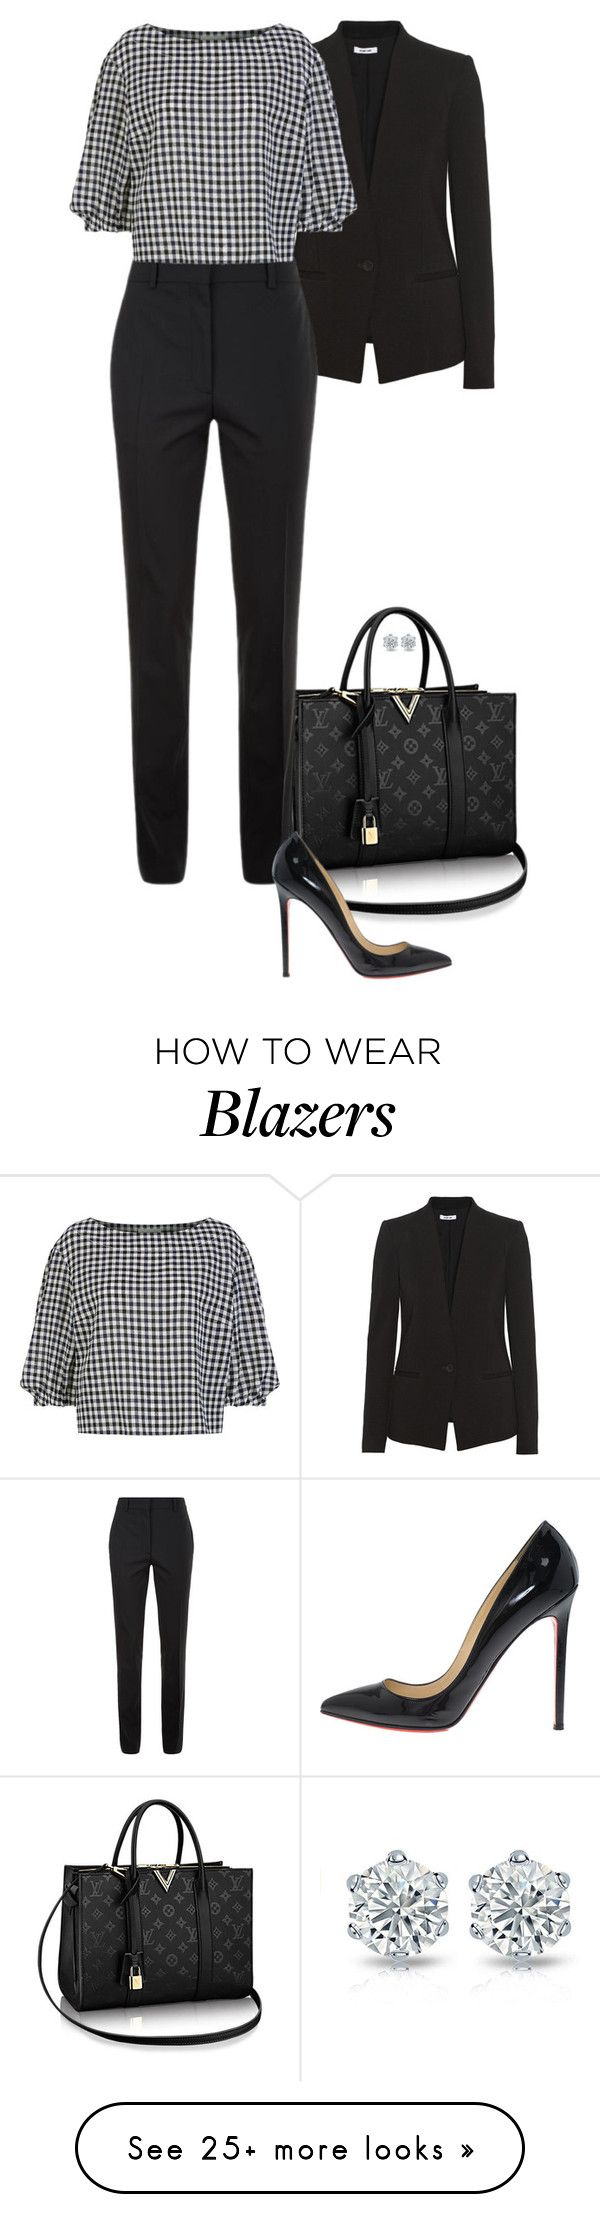 Close For Comfort. by foreverforbiddenromancefashion on Polyvore featuring Helmut Lang, Victoria Beckham, Sonia Rykiel and Christian Louboutin